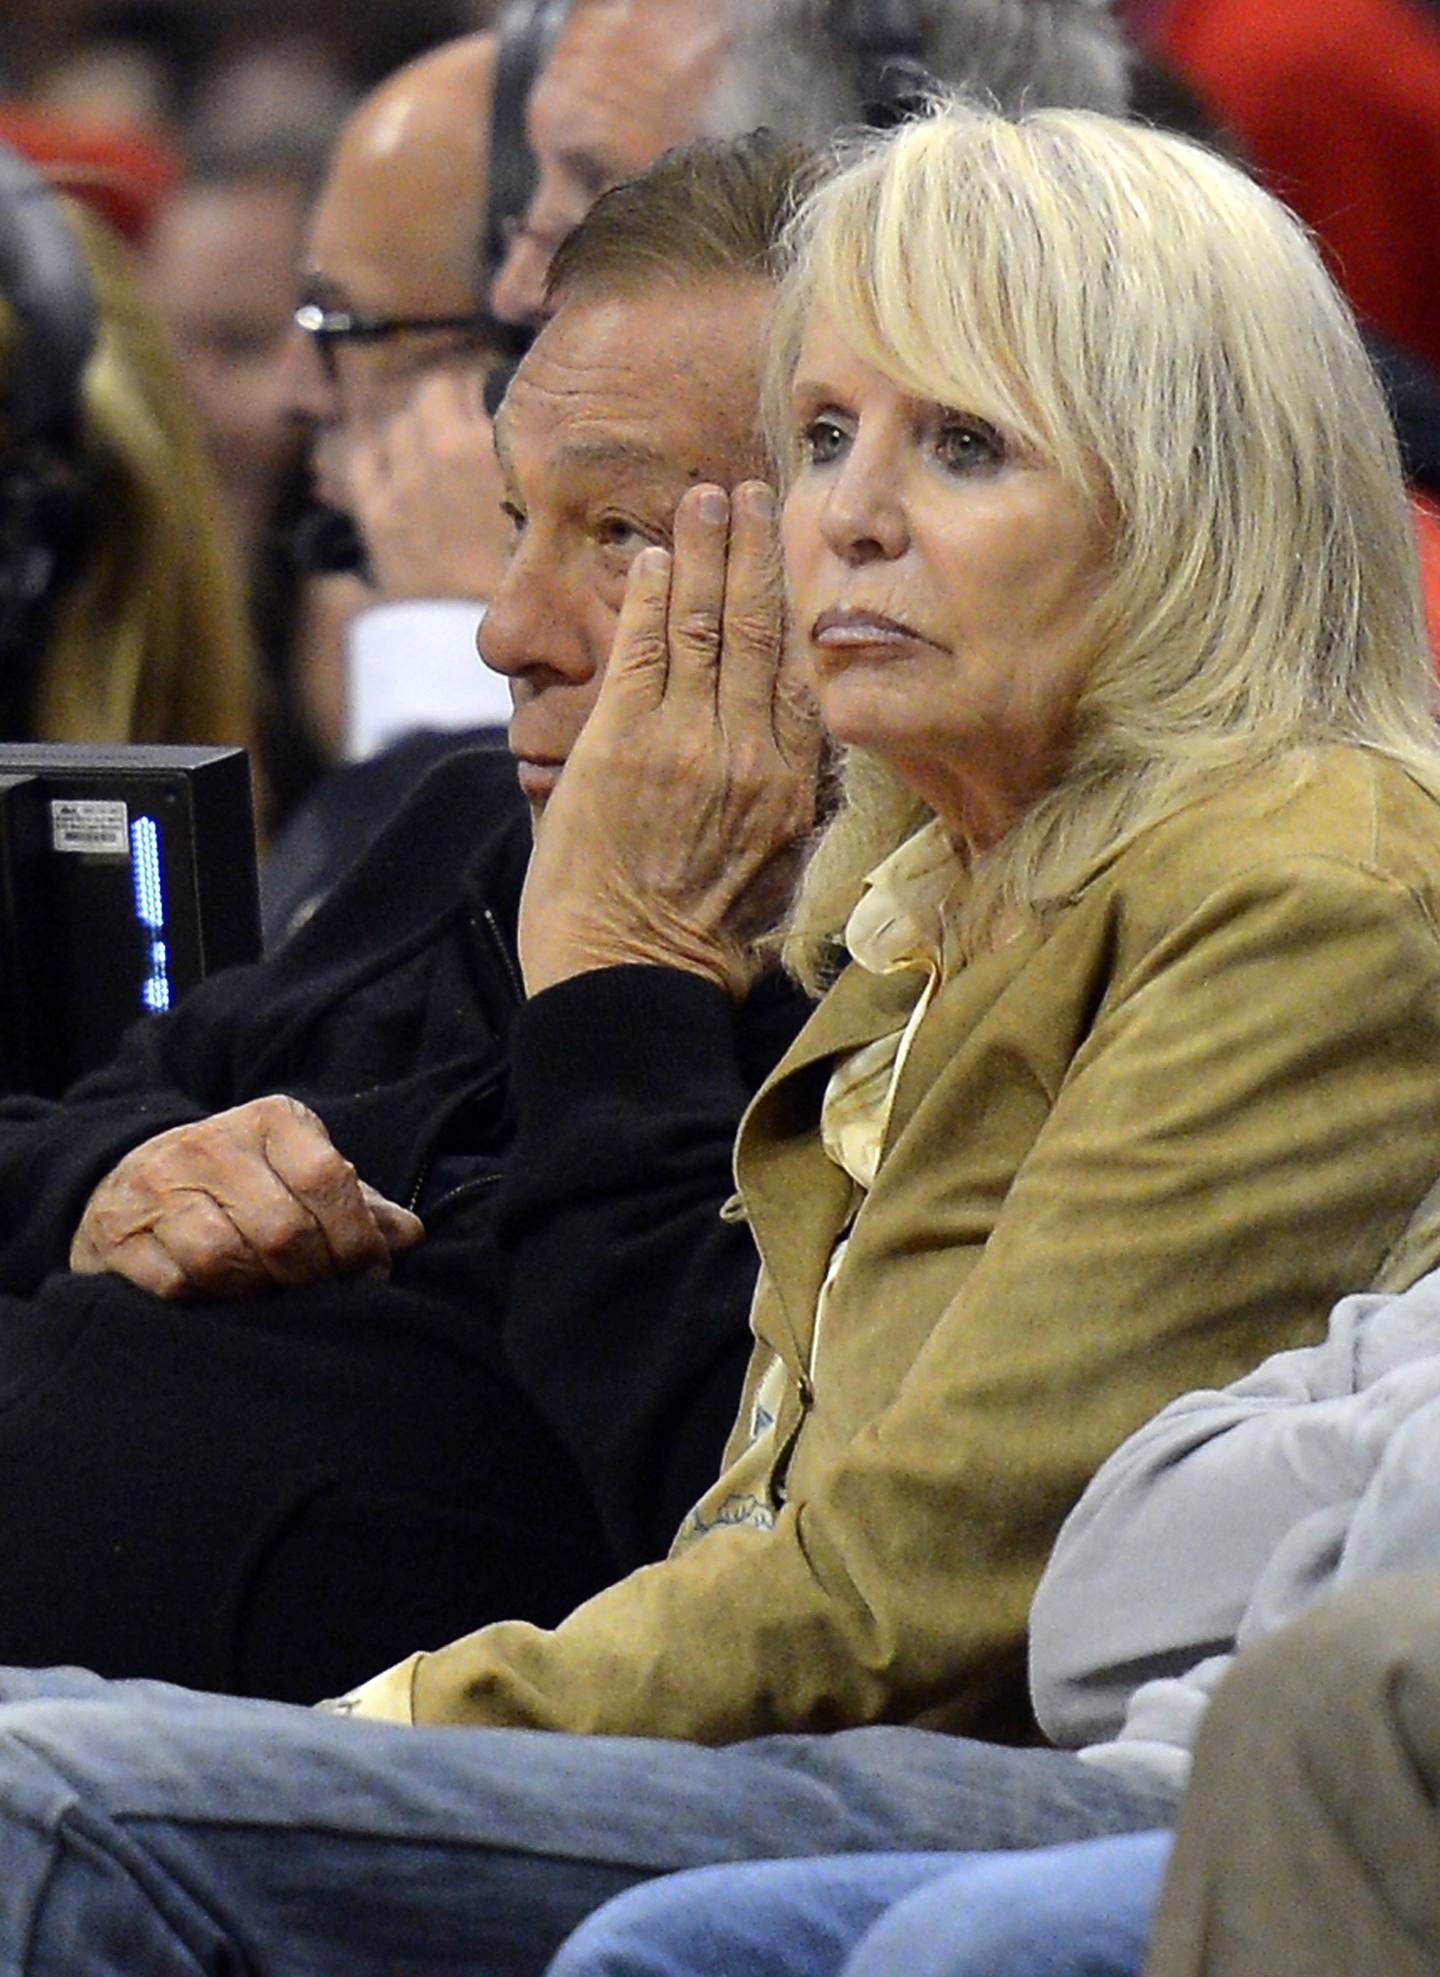 FILE - In this May 19, 2012, file photo, Los Angeles Clippers owner Donald Sterling, left, and his wife Rochelle watch during the second half in Game 3 of an NBA basketball playoffs Western Conference semifinal against the San Antonio Spurs in Los Angeles. An attorney representing the estranged wife of Clippers owner Donald Sterling said Thursday, May 8, 2014, that she will fight to retain her 50 percent ownership stake in the team.